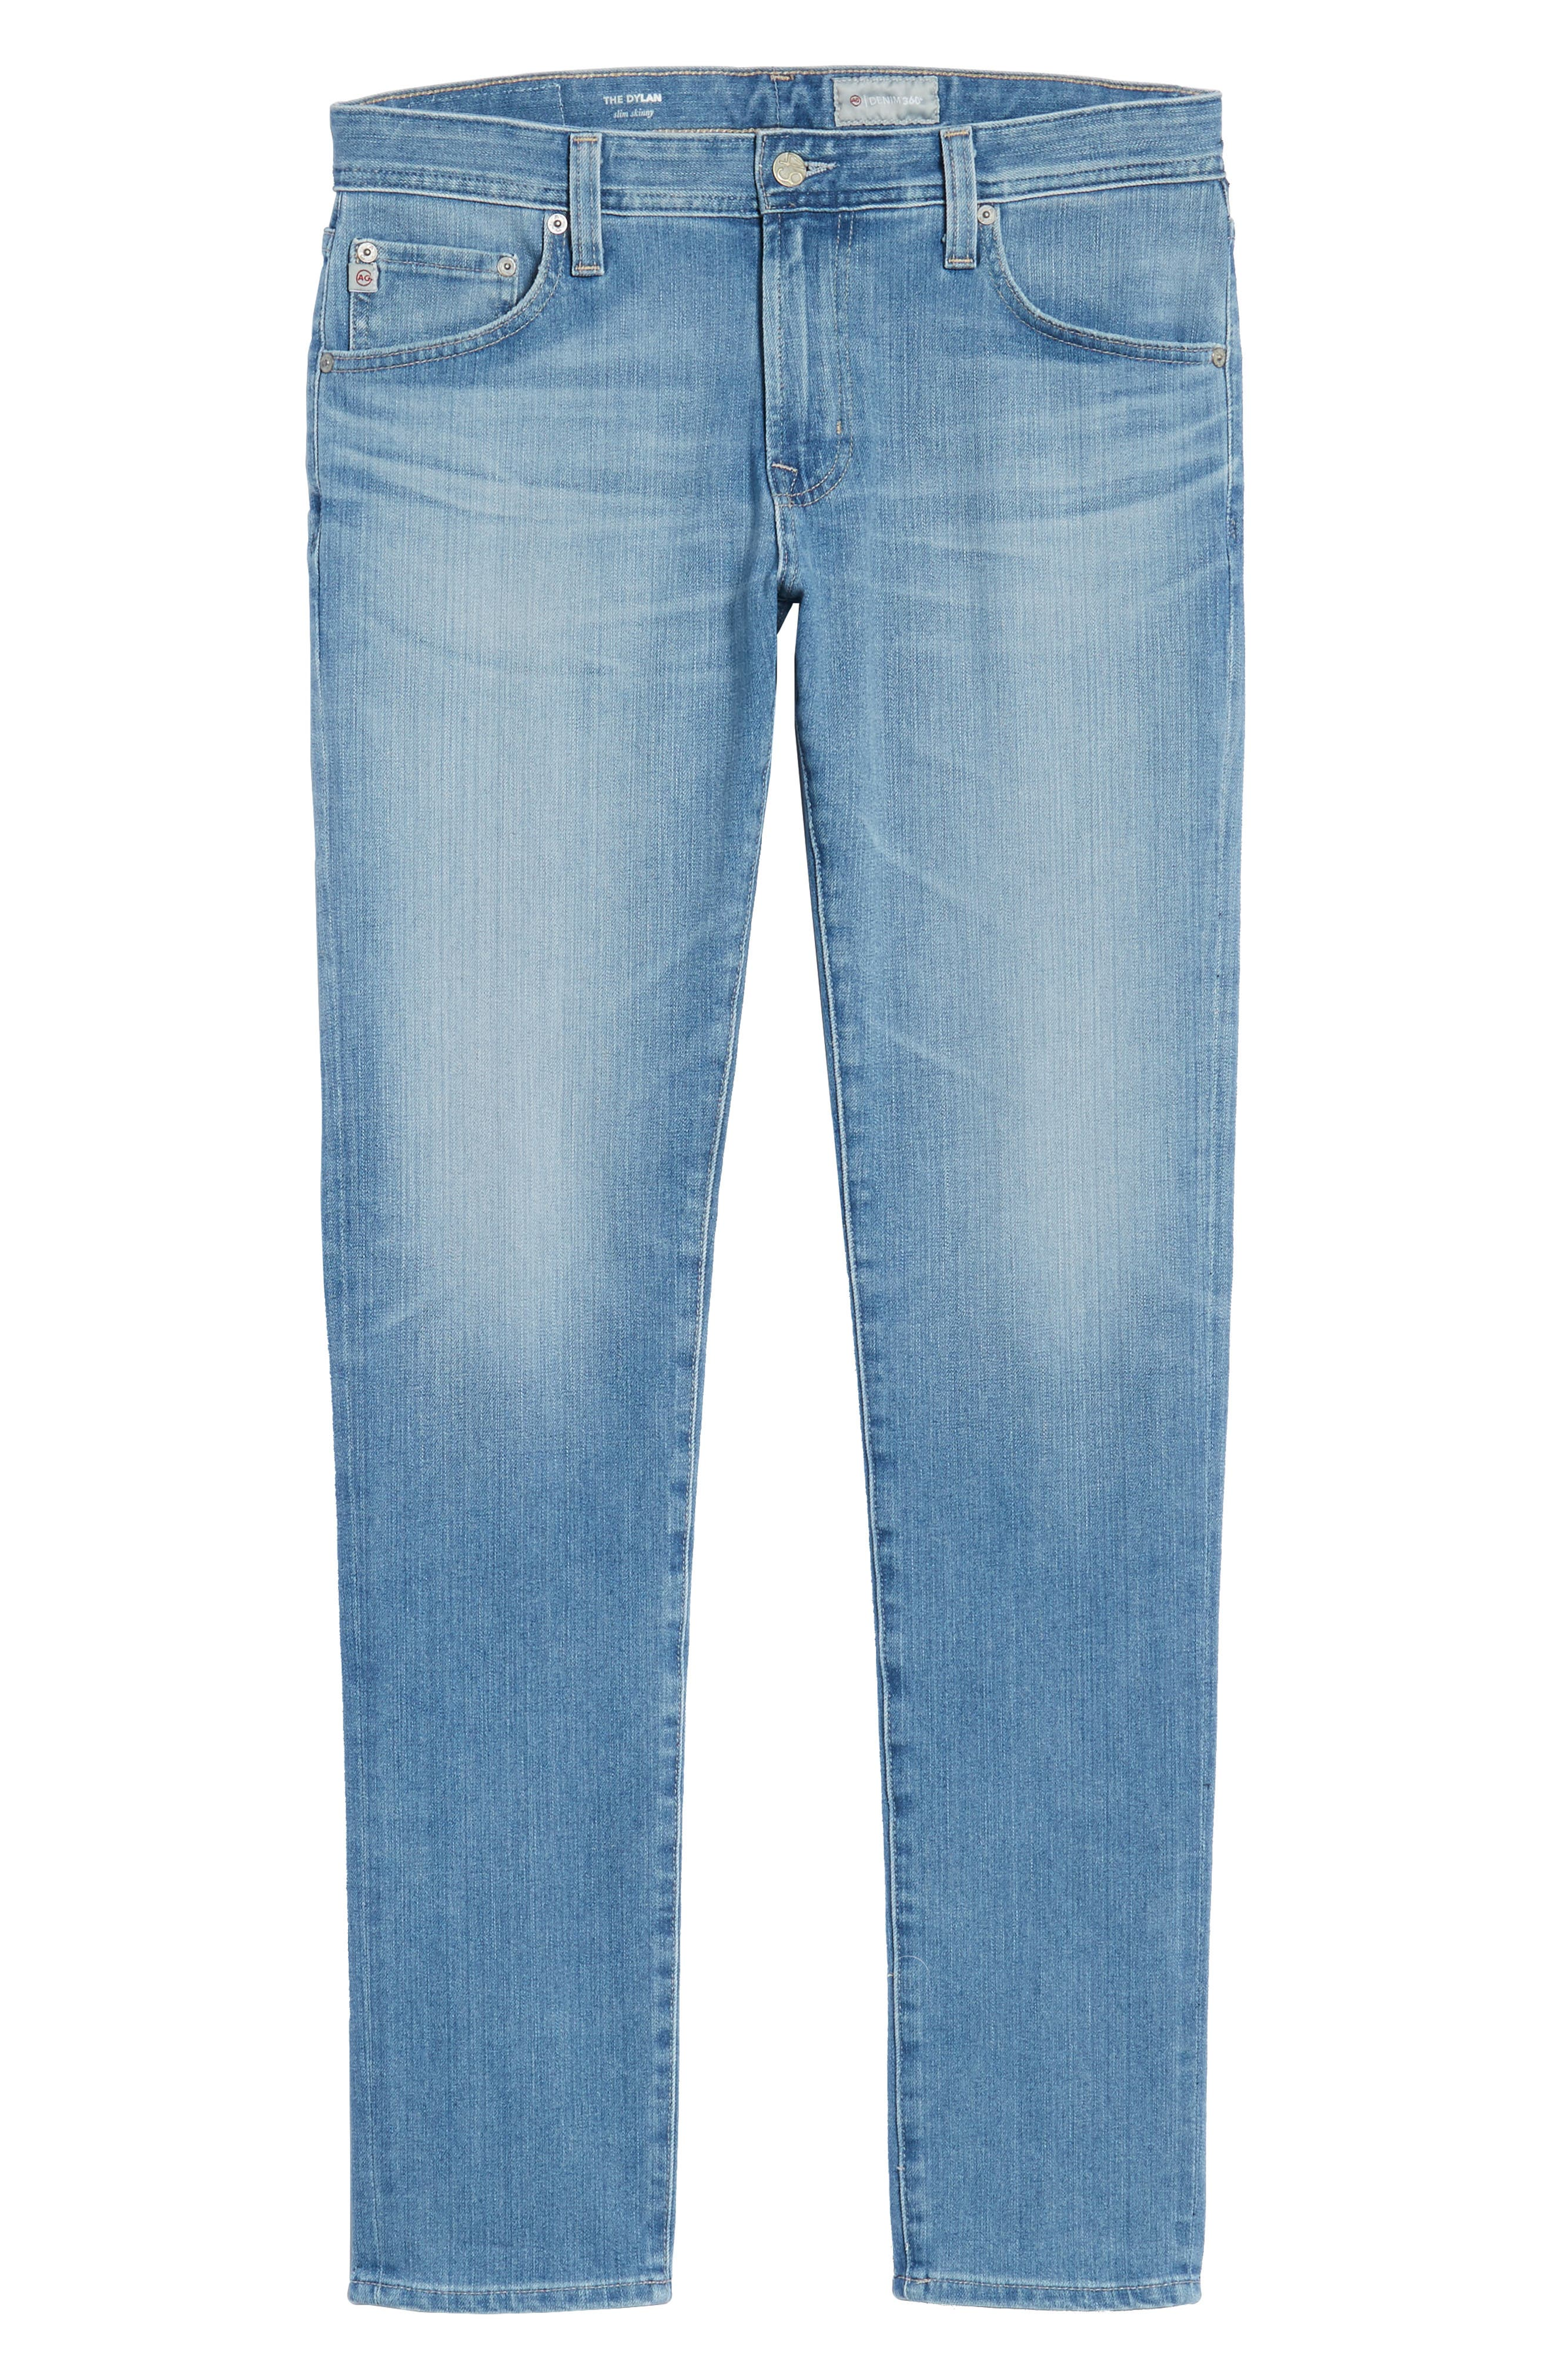 Dylan Skinny Fit Jeans,                             Alternate thumbnail 6, color,                             498